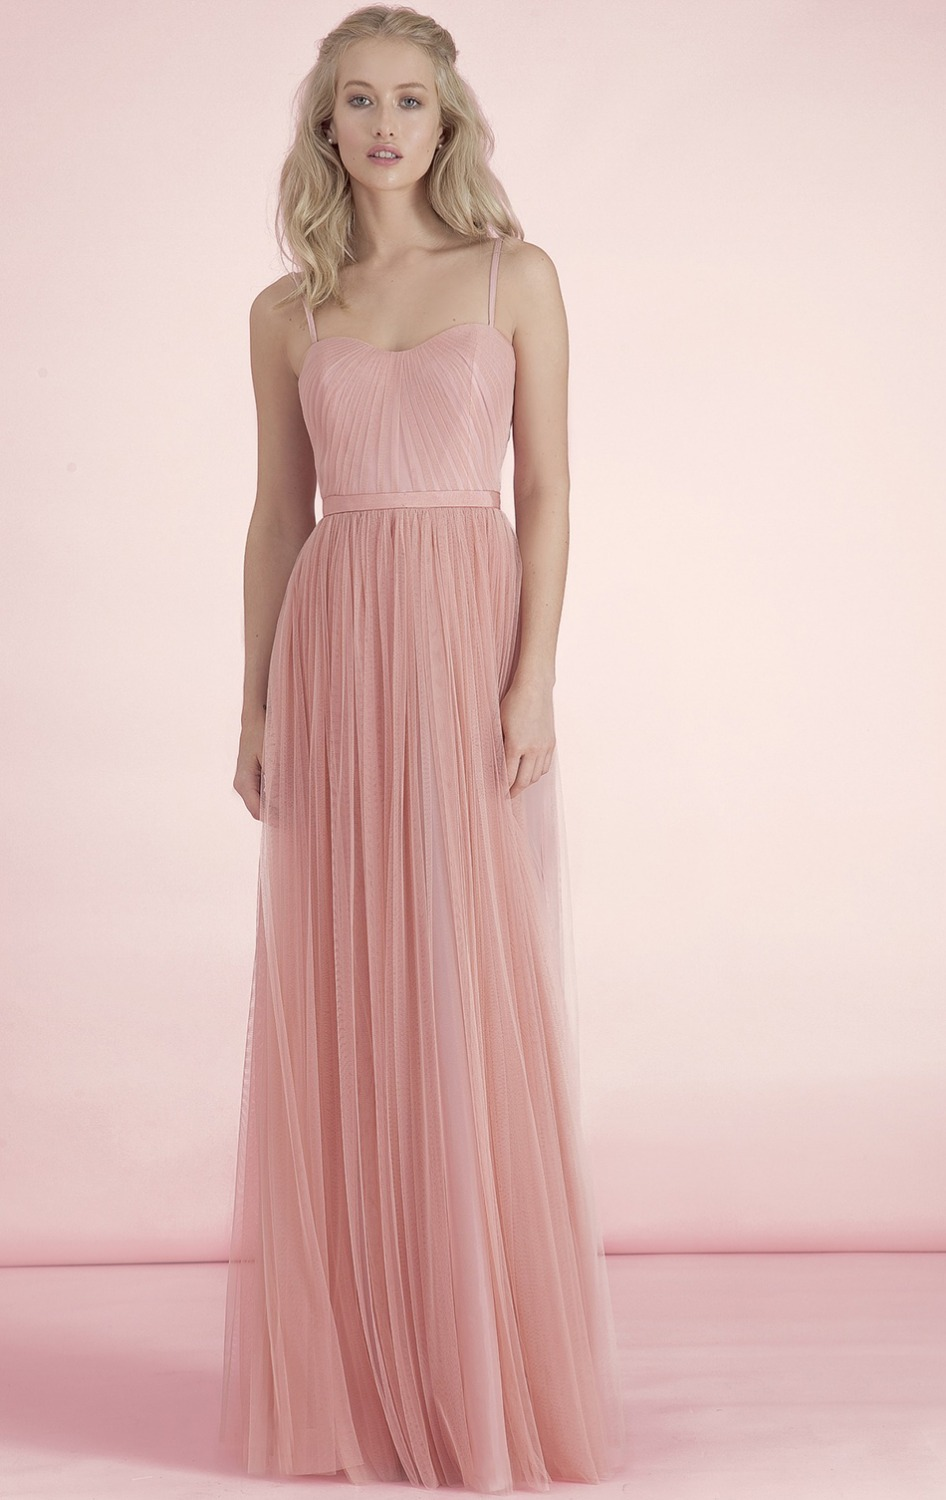 Free Shipping Cheap Formal 3 Styles Nude Pink Blush Bridesmaid ...